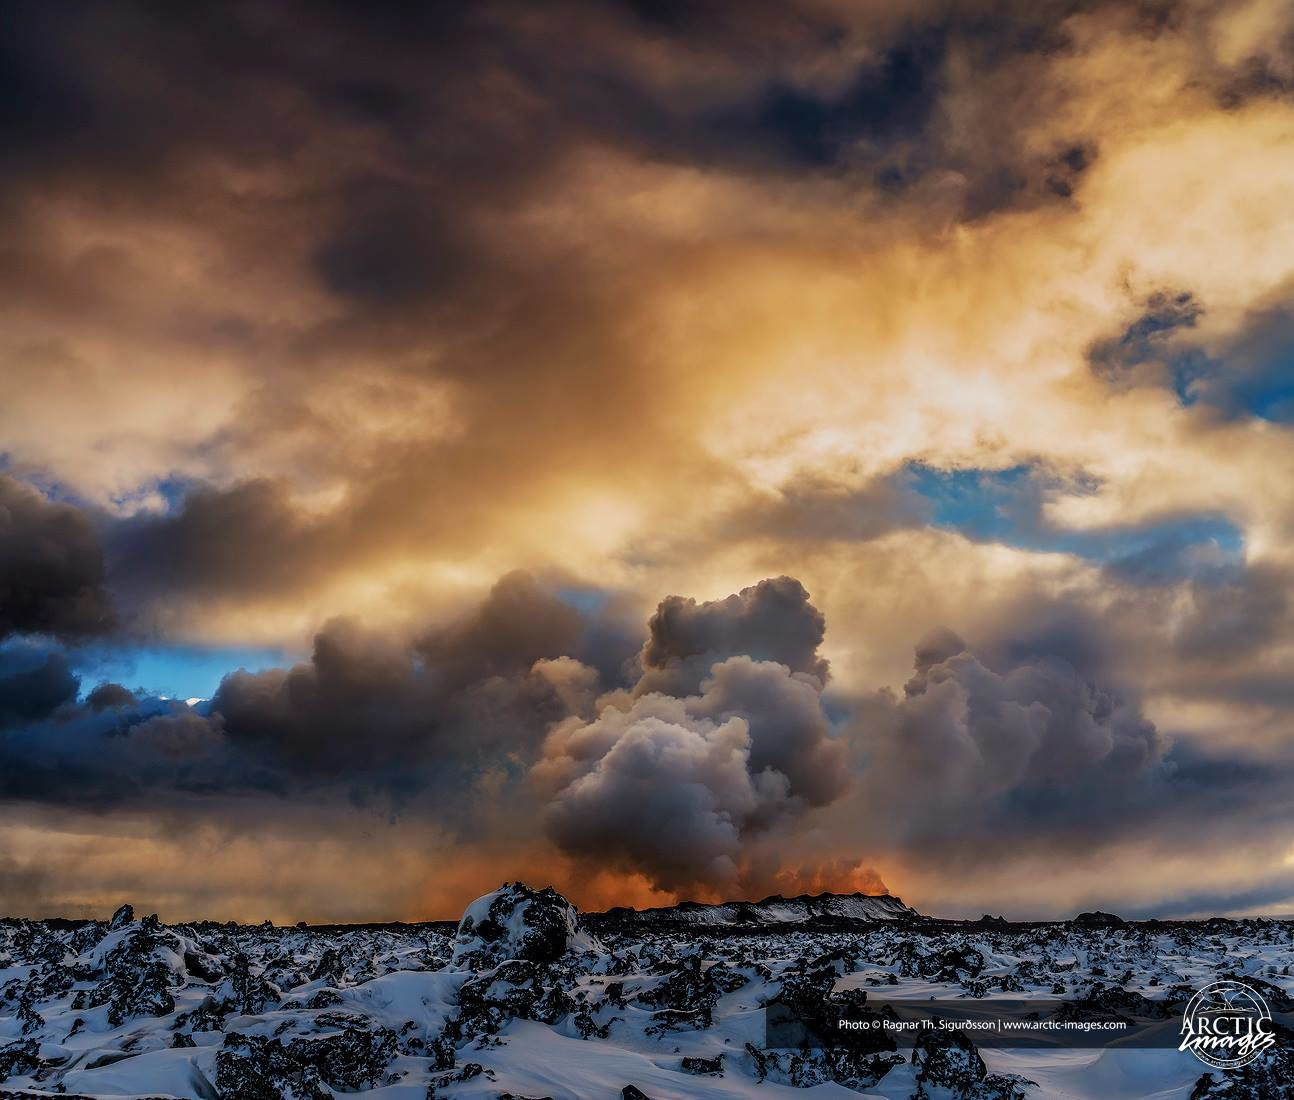 Holuhraun le 03.02.2015 - photo R.Sigurdsson - Artic images